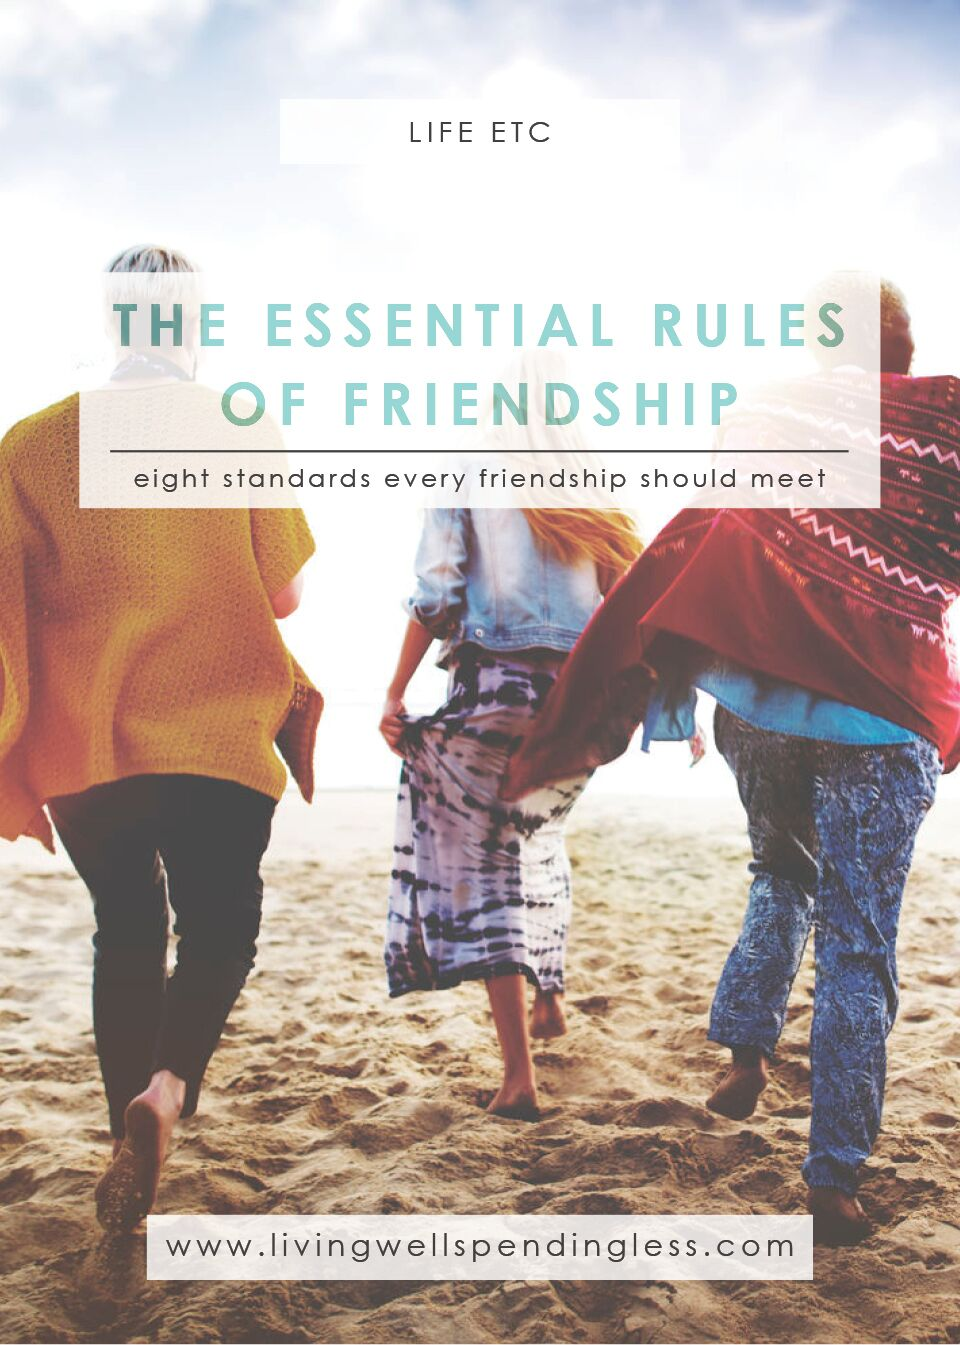 The Essential Rules of Friendship: Eight Standards Every Friendship Should Meet.